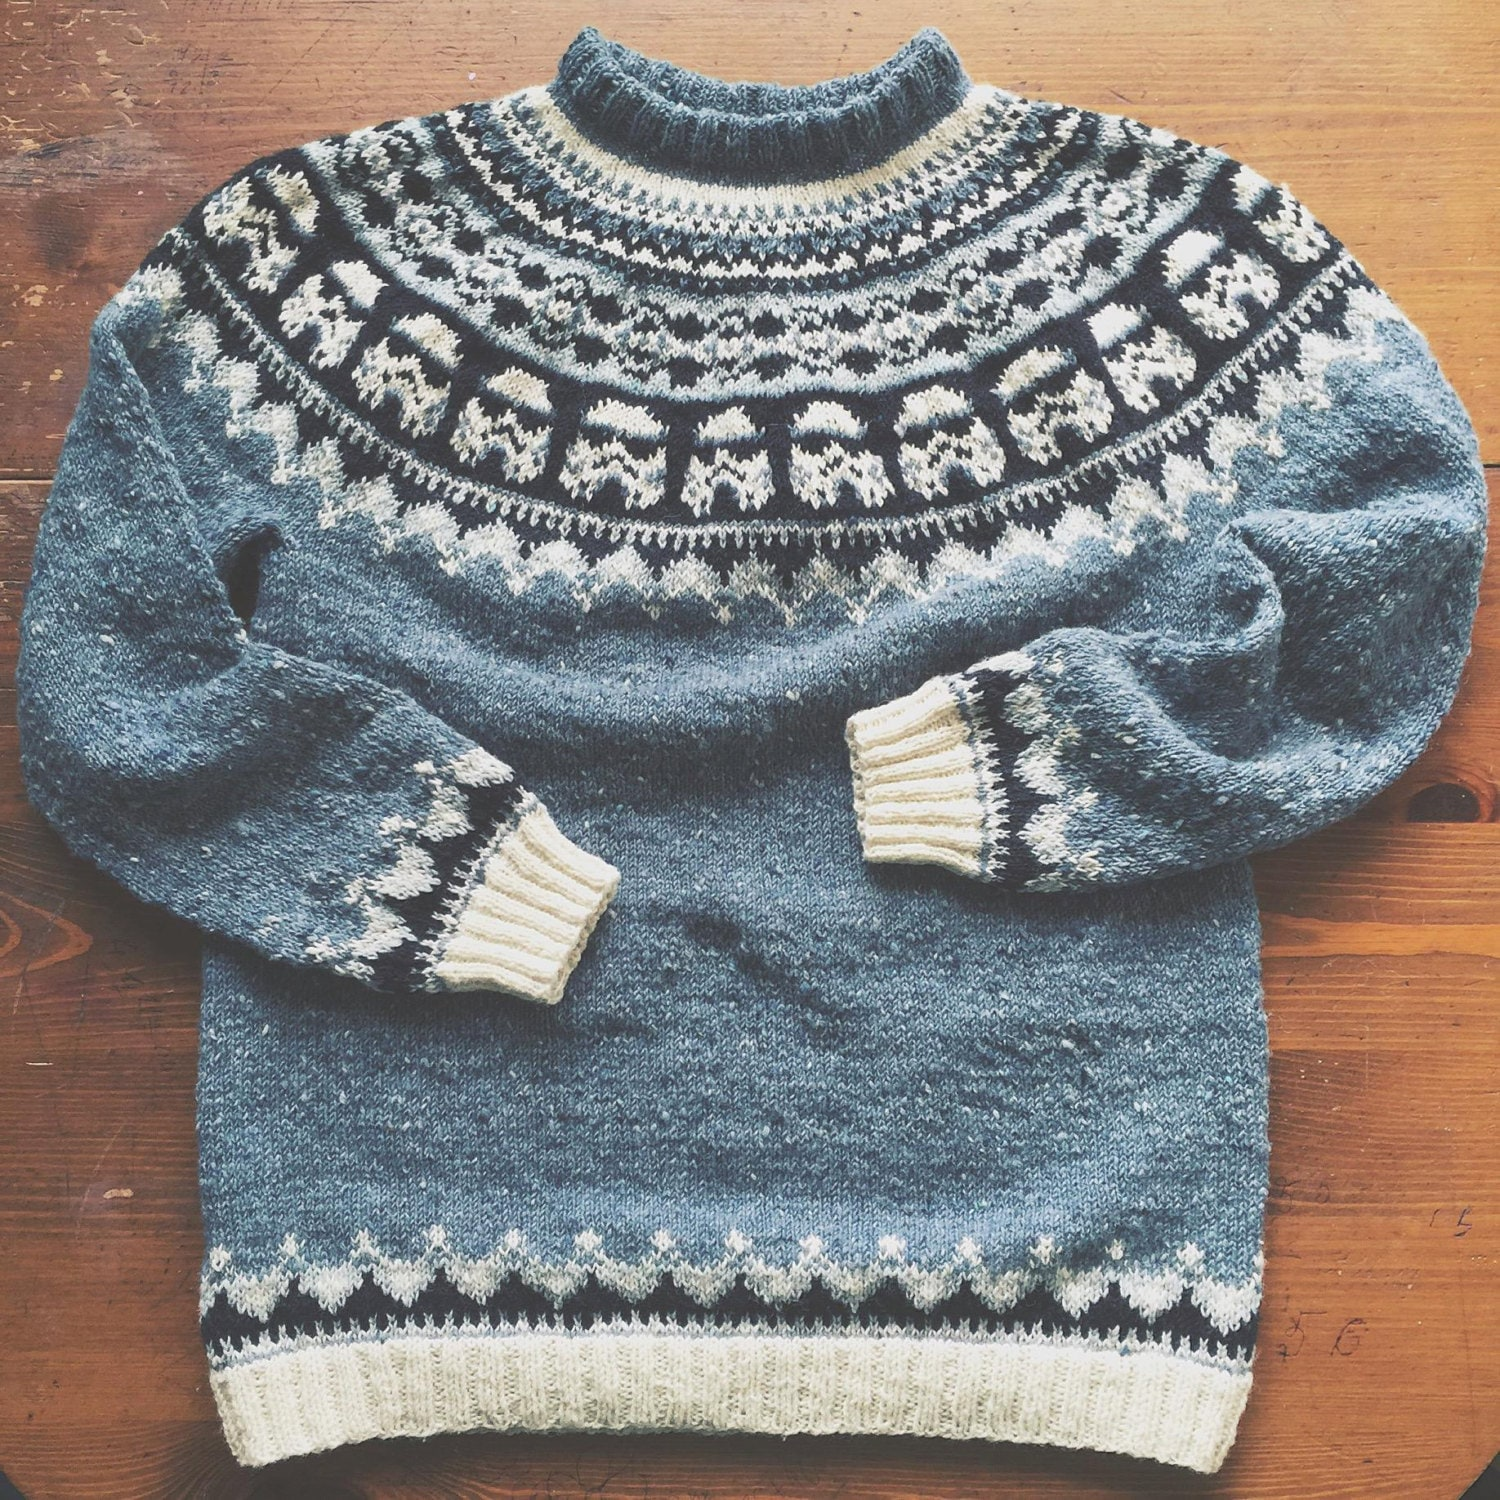 Knitting Sweater Tutorial : Knitting pattern sw sweater with storm troopers tutorial men